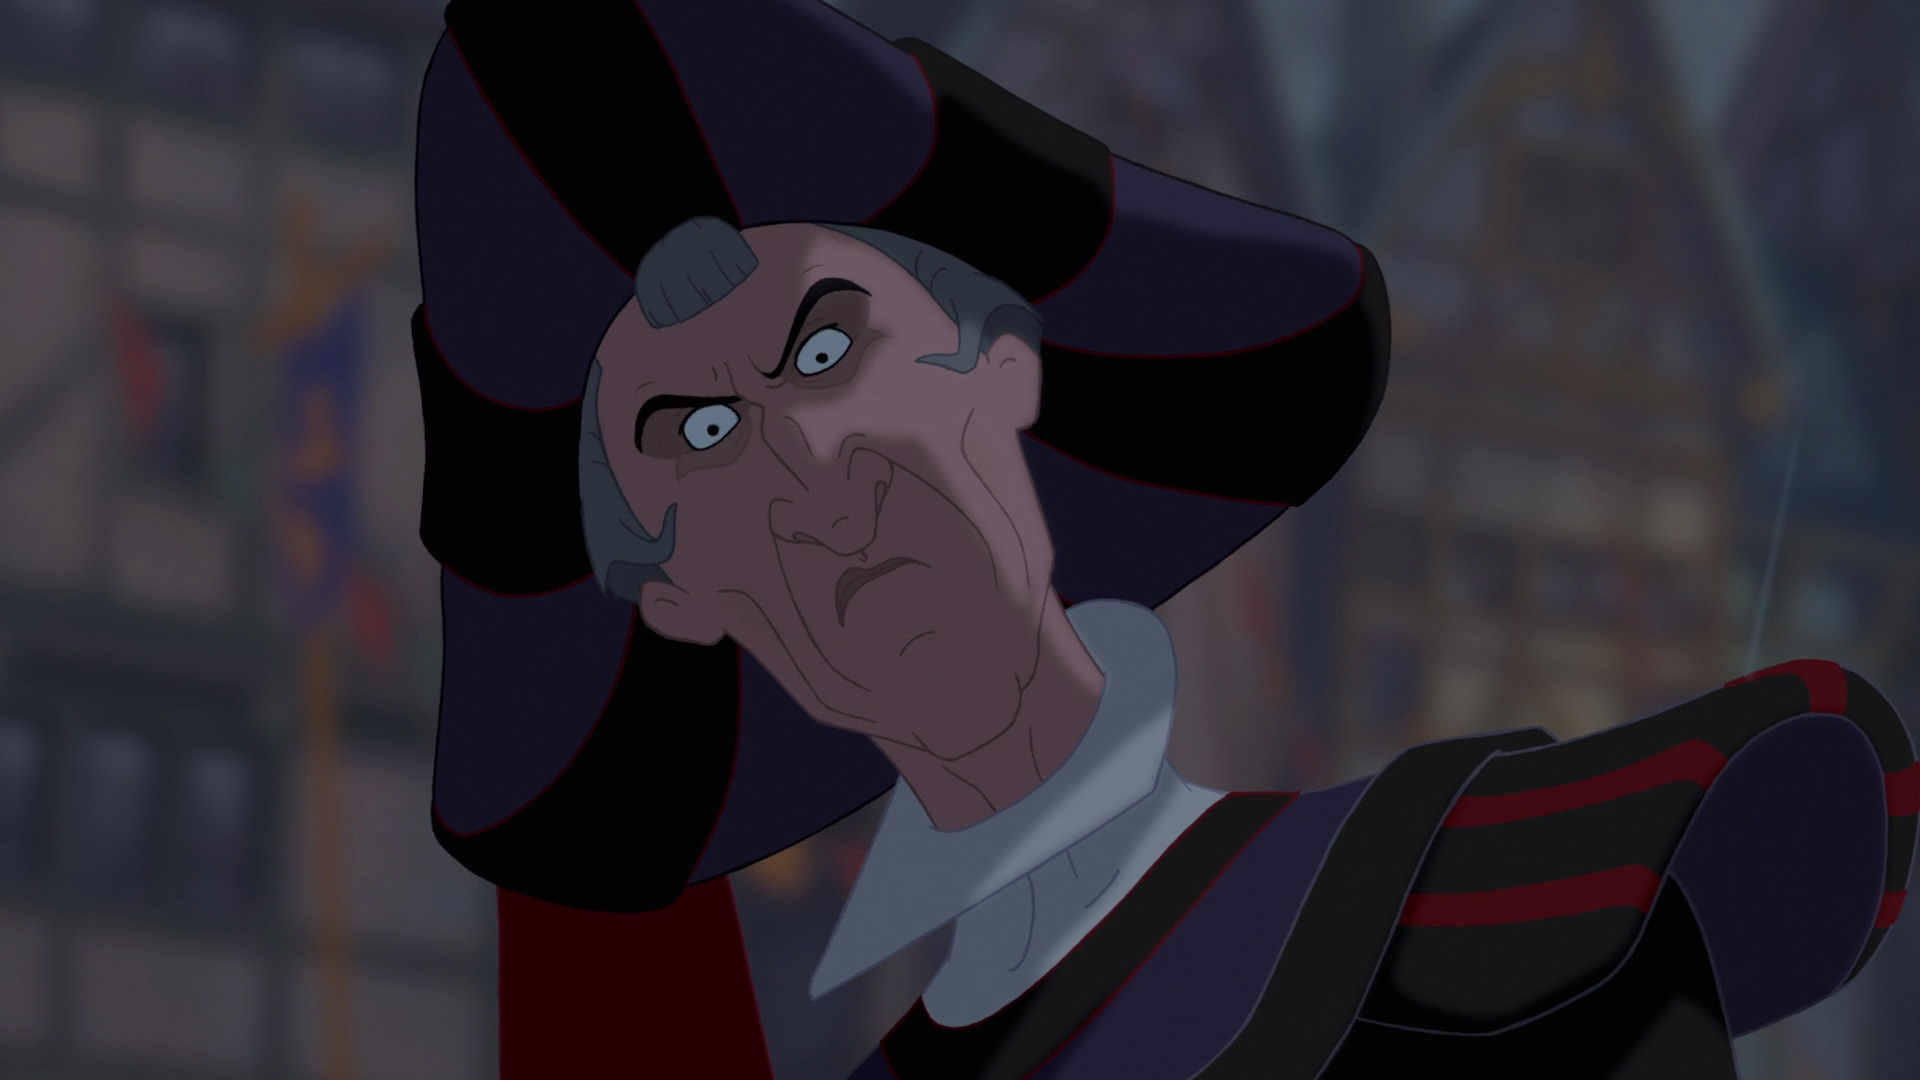 notre dame character analysis of claude frollo Claude frollo timeline and summary back next  frollo is born to a wealthy bourgeois family who own a good chunk of paris his parents decide to make a churchman out of him, so he goes to school to study latin and other scholarly things.